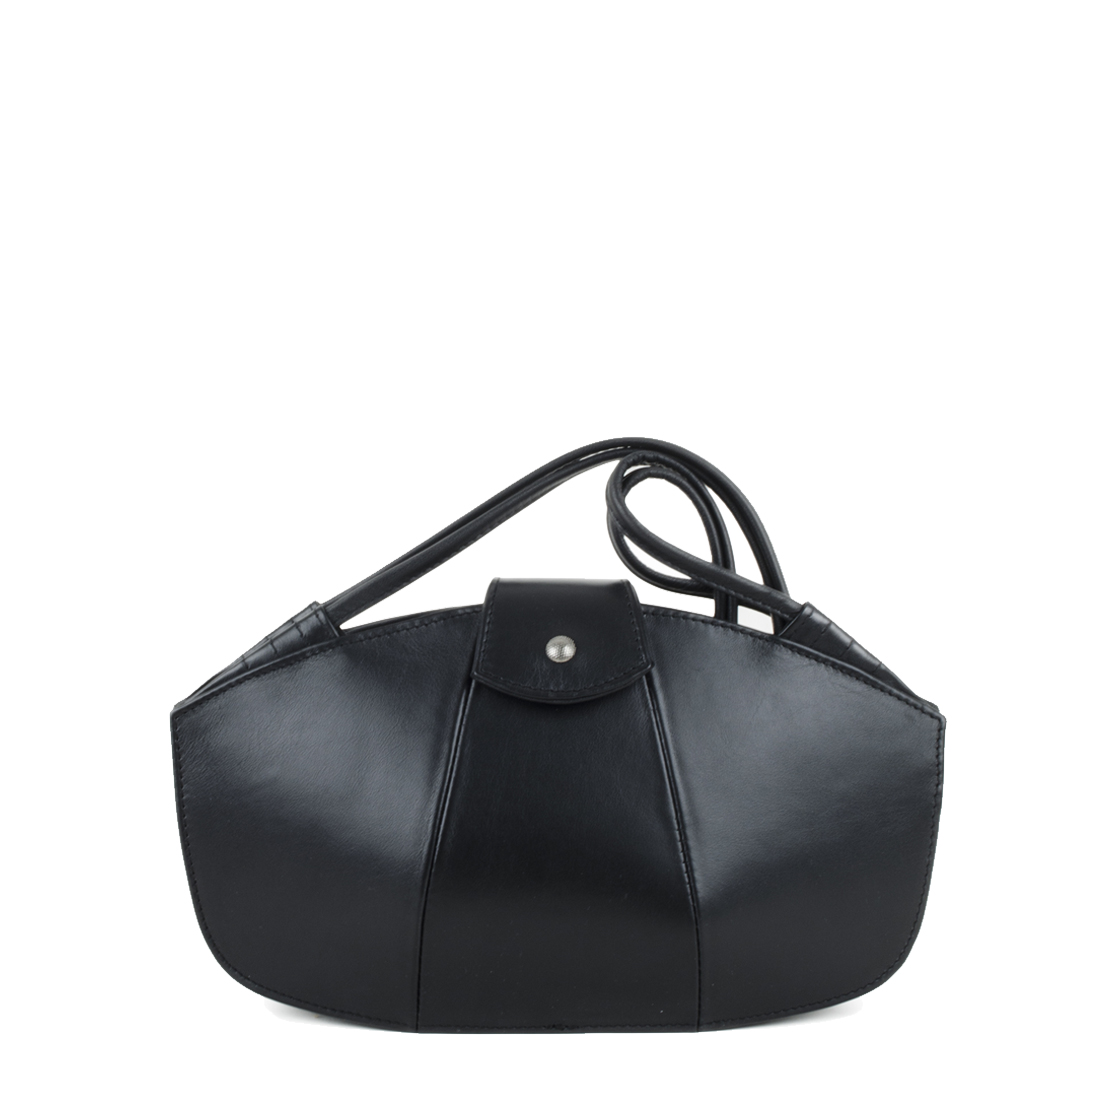 Kate Black Leather Shoudler Bag